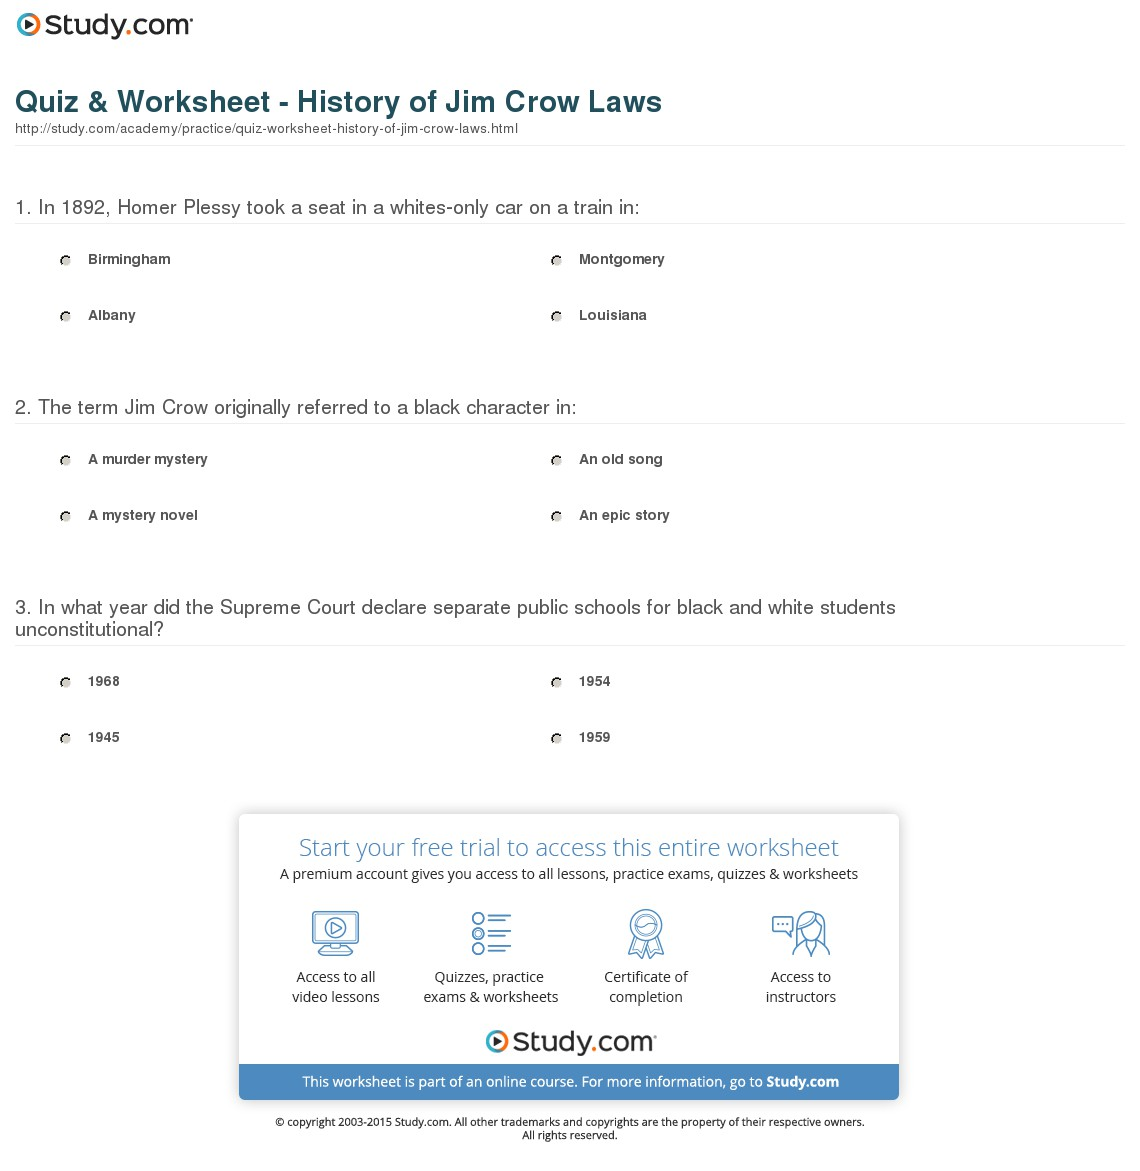 011 Quiz Worksheet History Of Jim Crow Laws Essay Example Definition Striking Topics For College Students Middle School Full